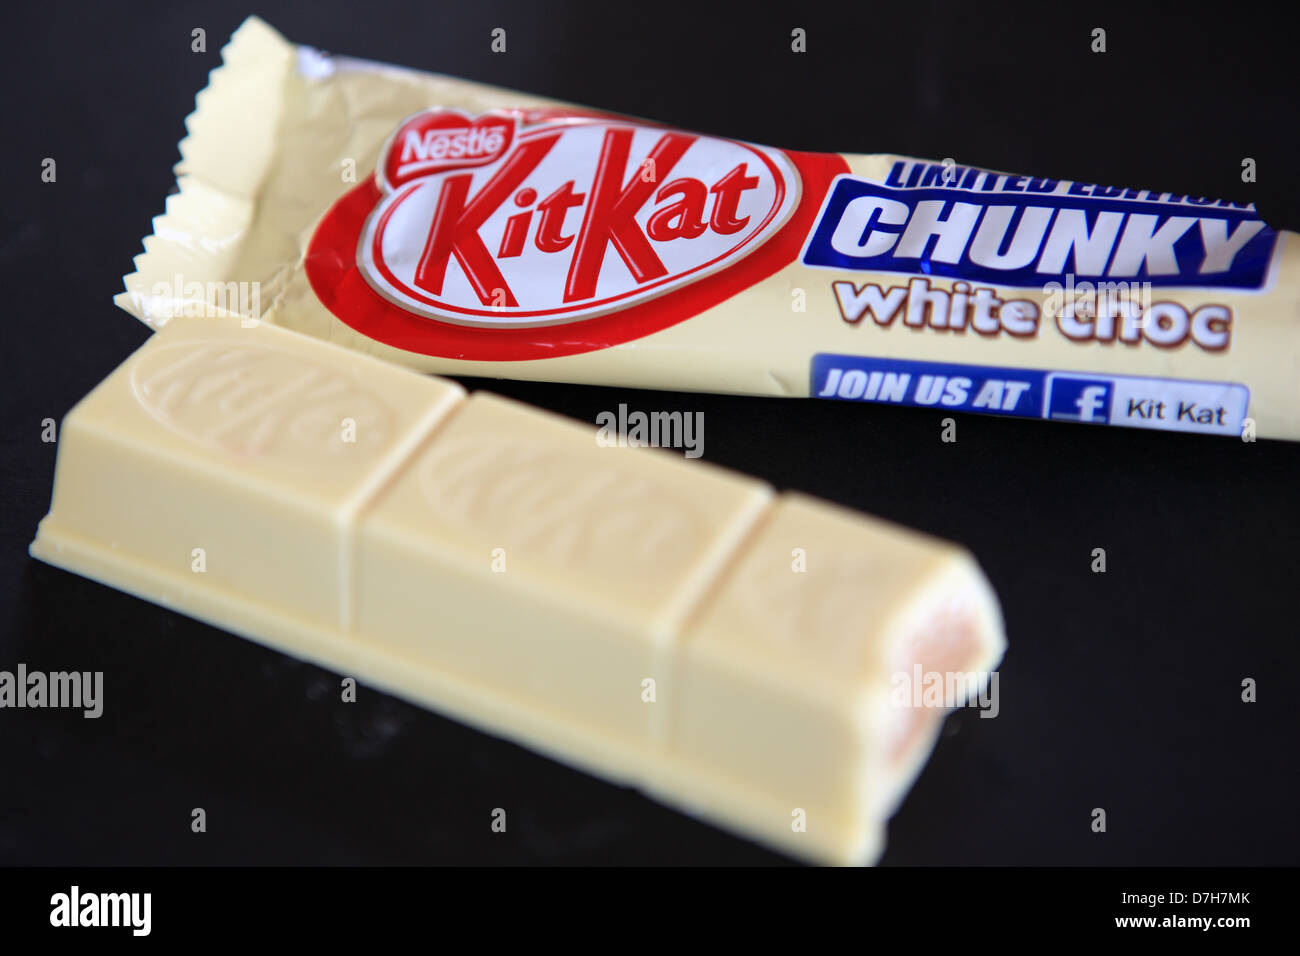 Kitkat - Limited edition chunky white chocolate biscuit bar with a bite out of it - Stock Image